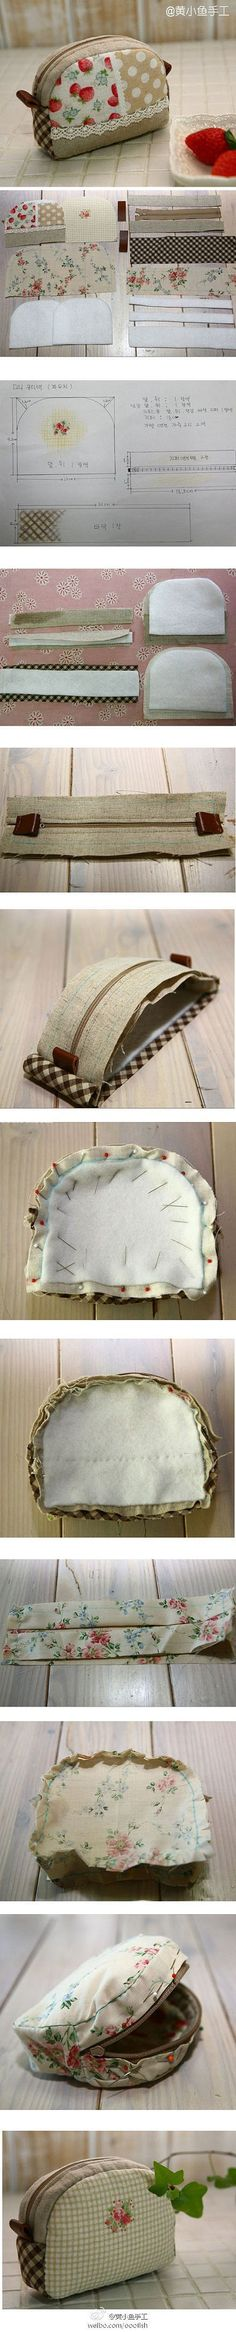 Pouch tutorial, sewing tutorial, makeup bag, sewing bag and lunch bag Sewing Hacks, Sewing Tutorials, Sewing Patterns, Tutorial Sewing, Bag Tutorials, Purse Patterns, Fabric Crafts, Sewing Crafts, Sewing Projects